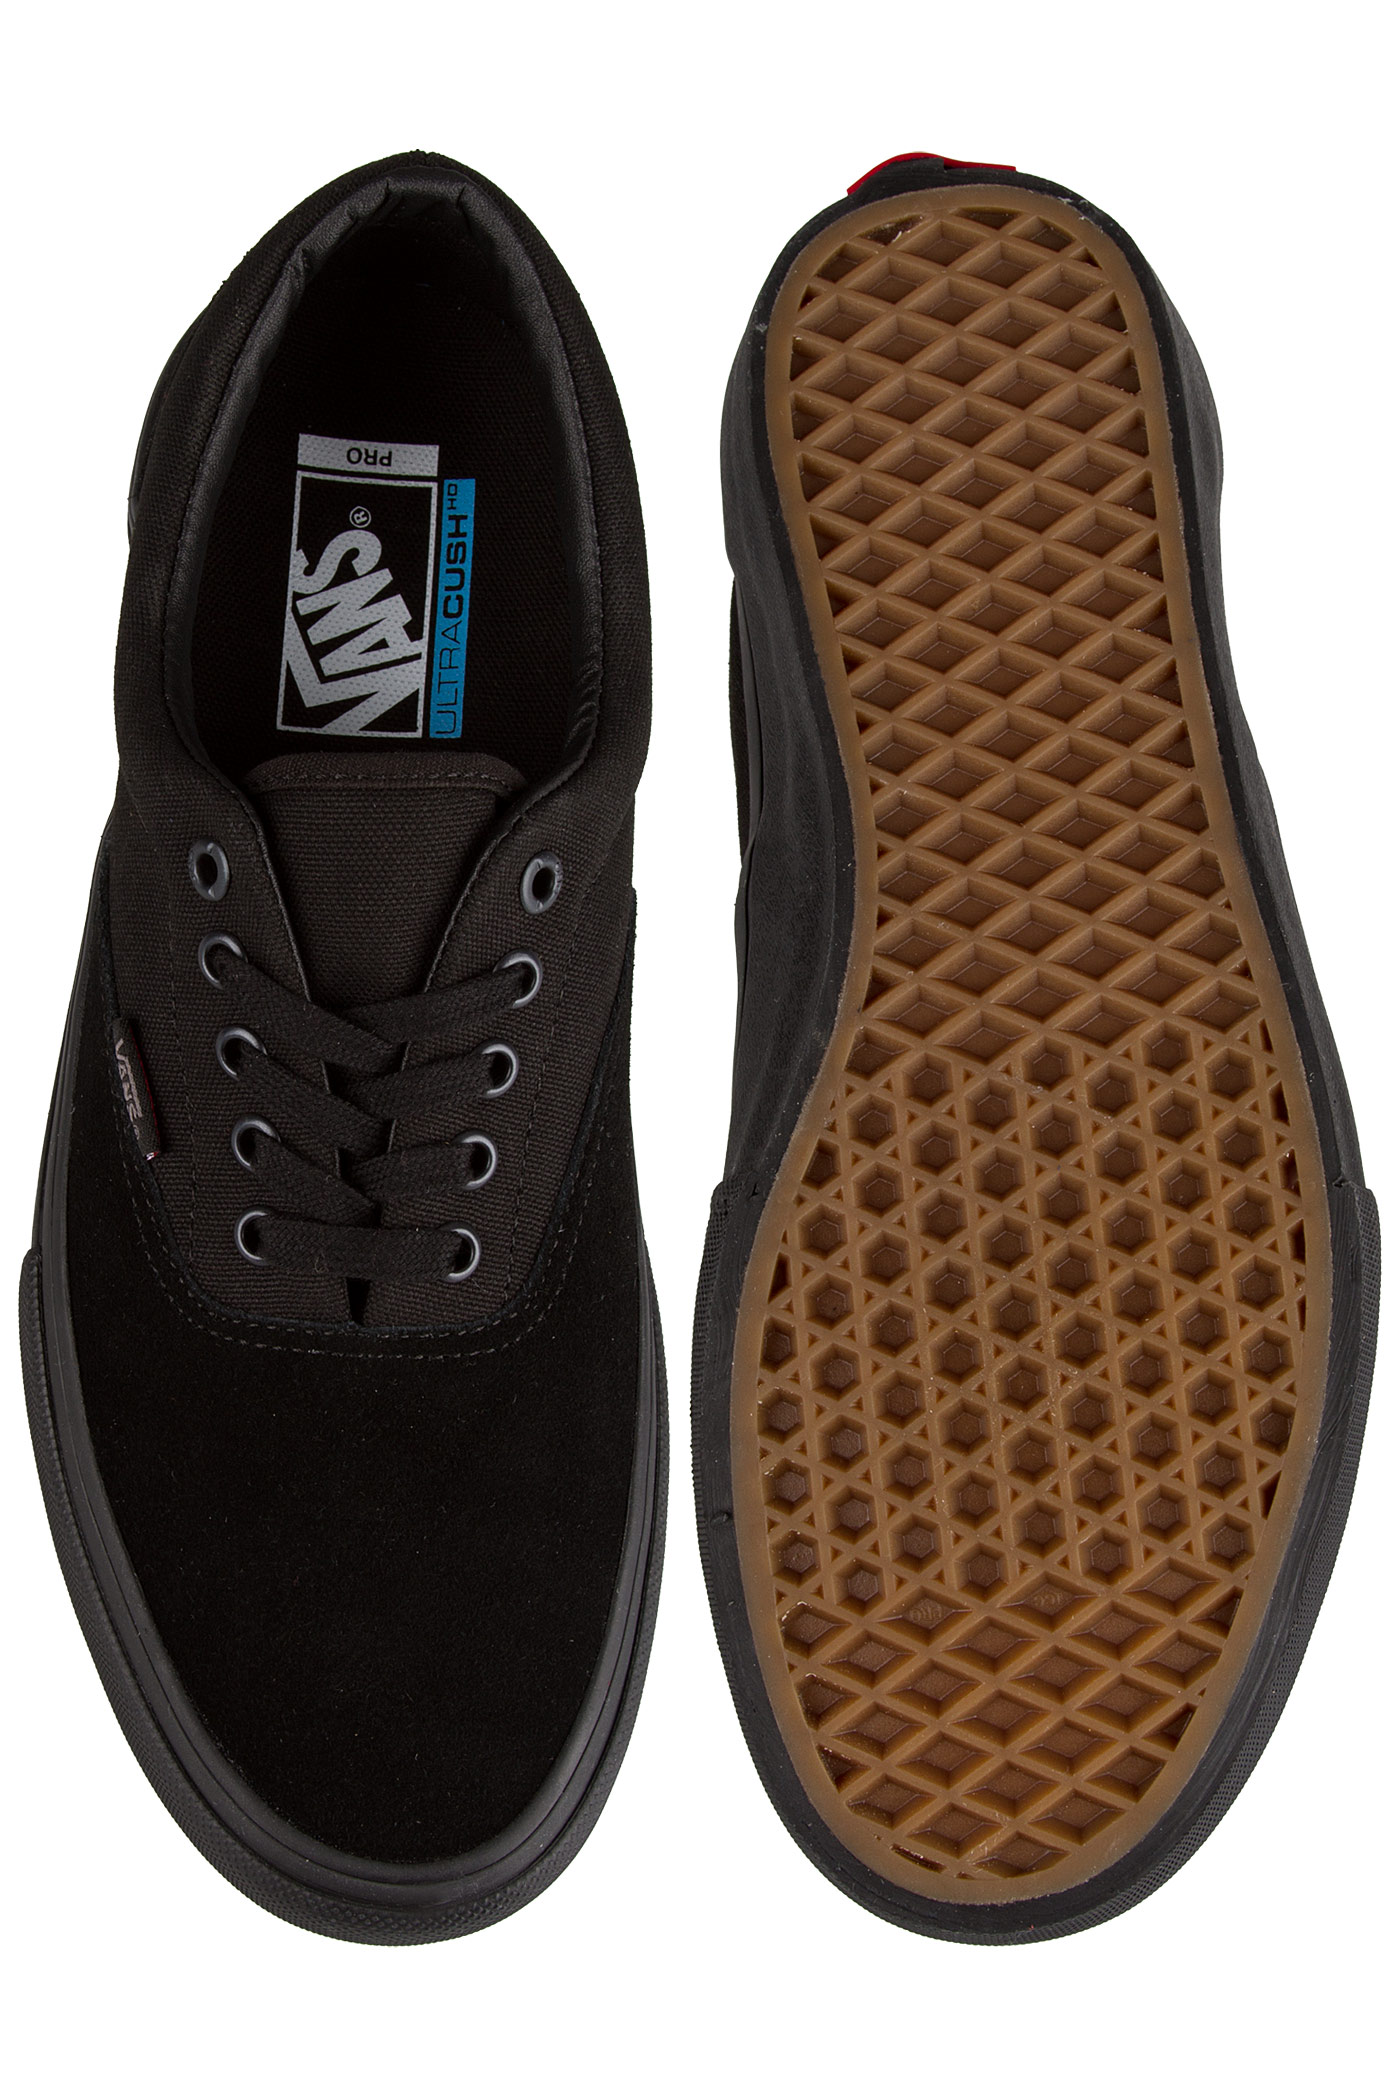 vans era ultracush